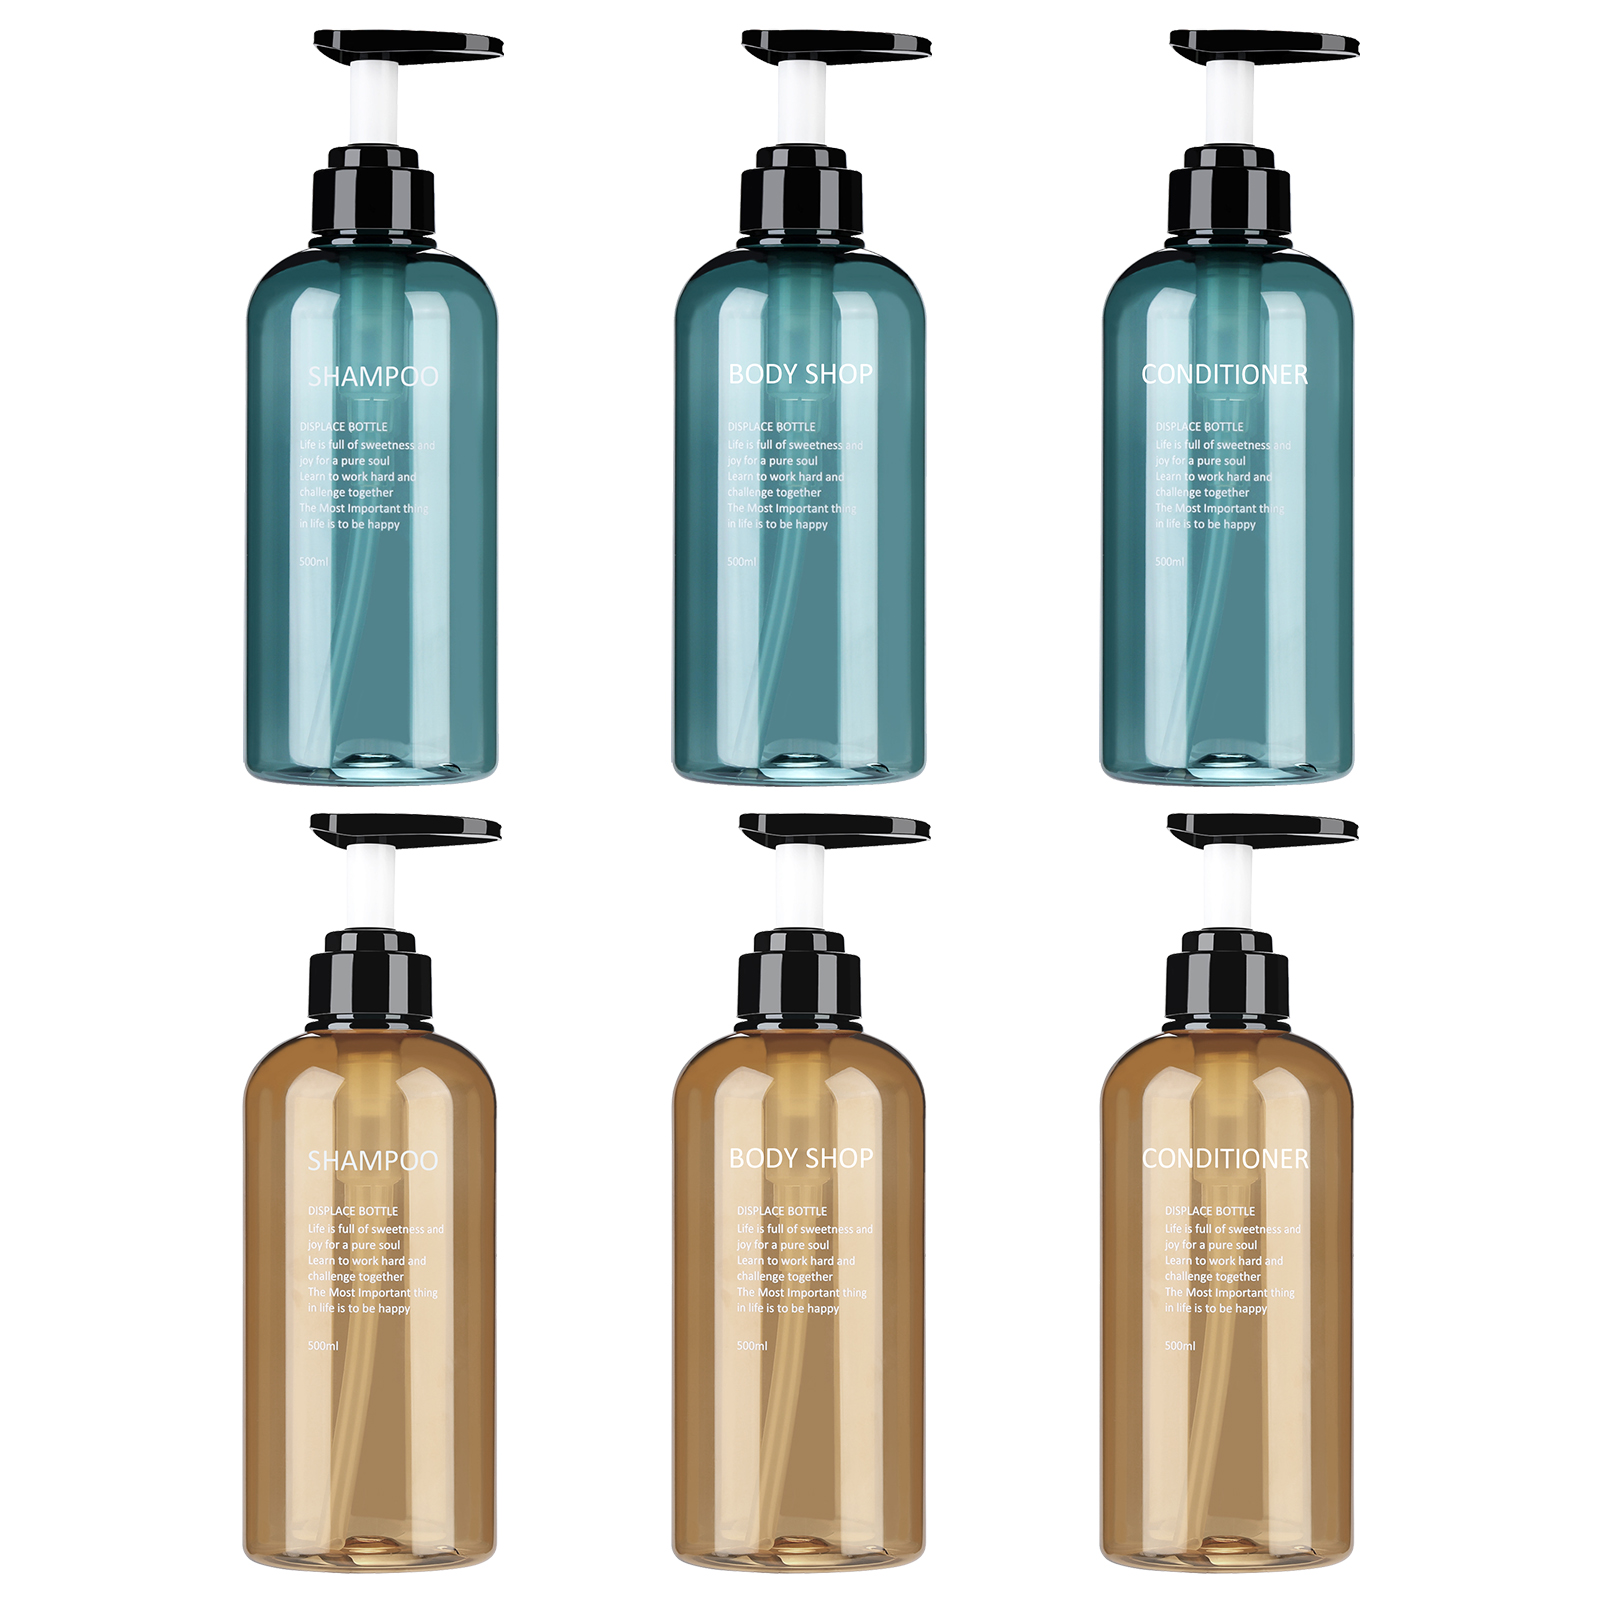 500ml Liquid Soap Dispensers With Pump For Essential Oils Homemade Lotions Round Amber Glass Bottles